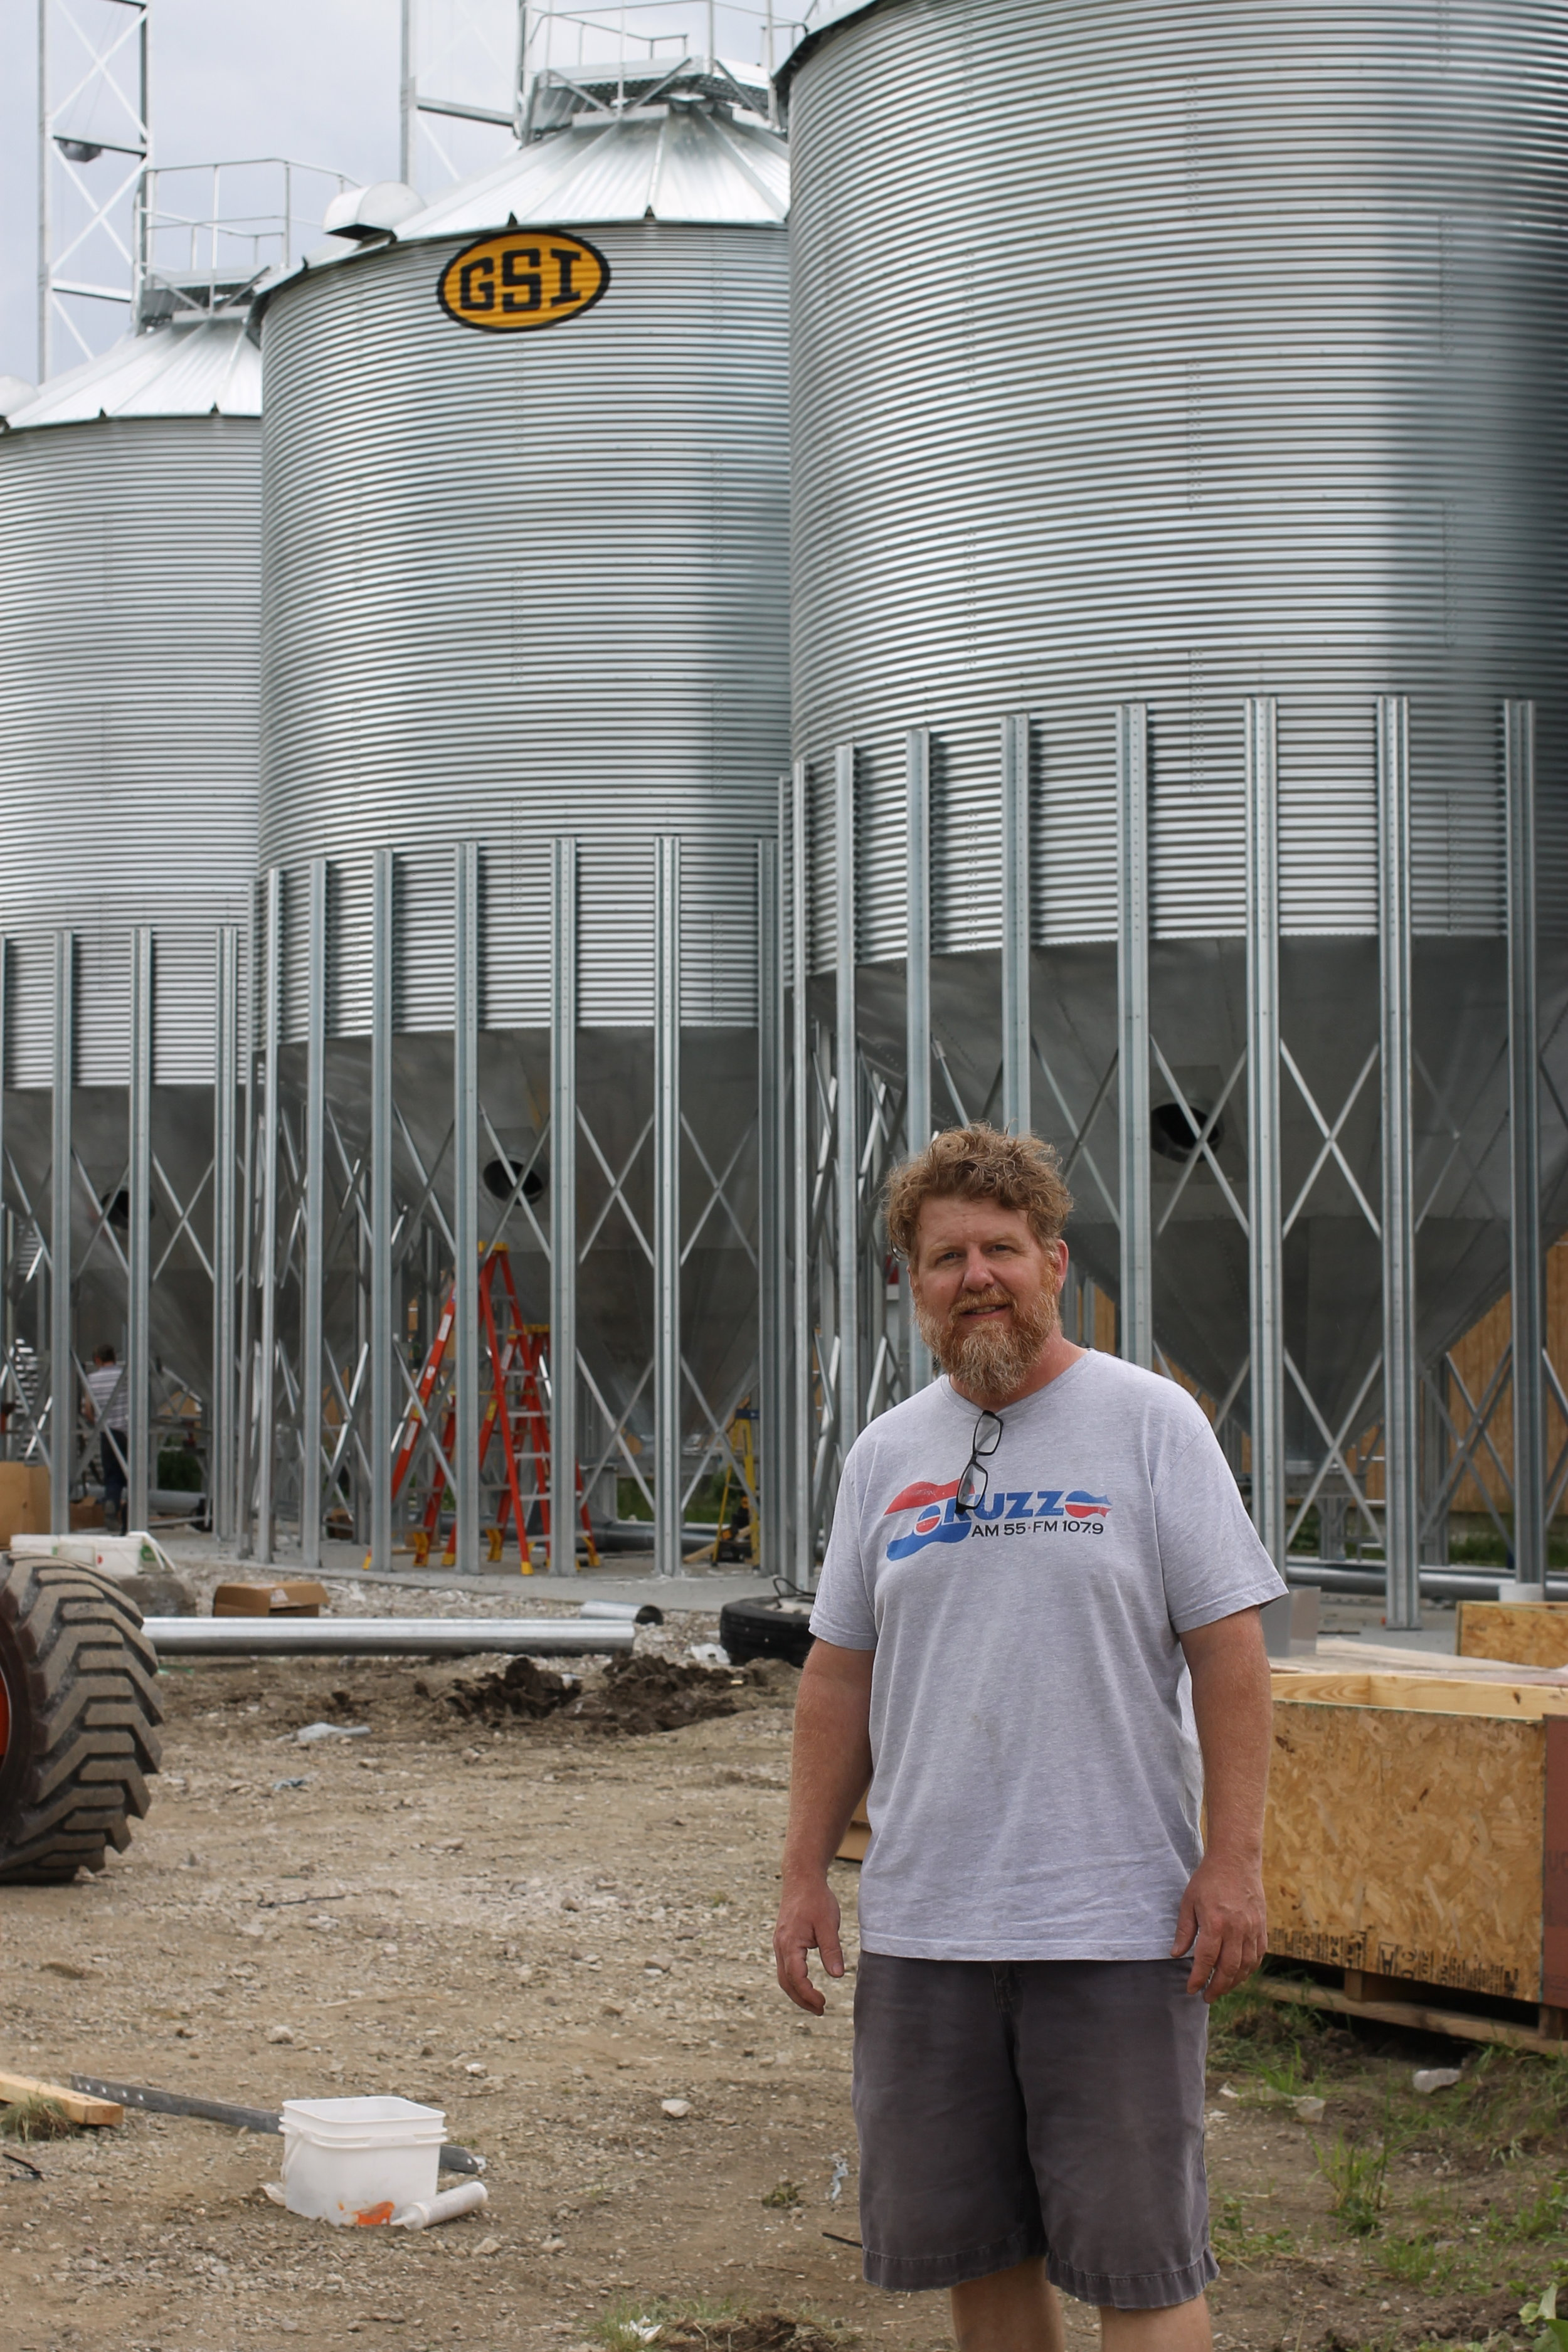 Andrew Peterson co-owns Nordic Farms. The silos behind him hold grain for malting.